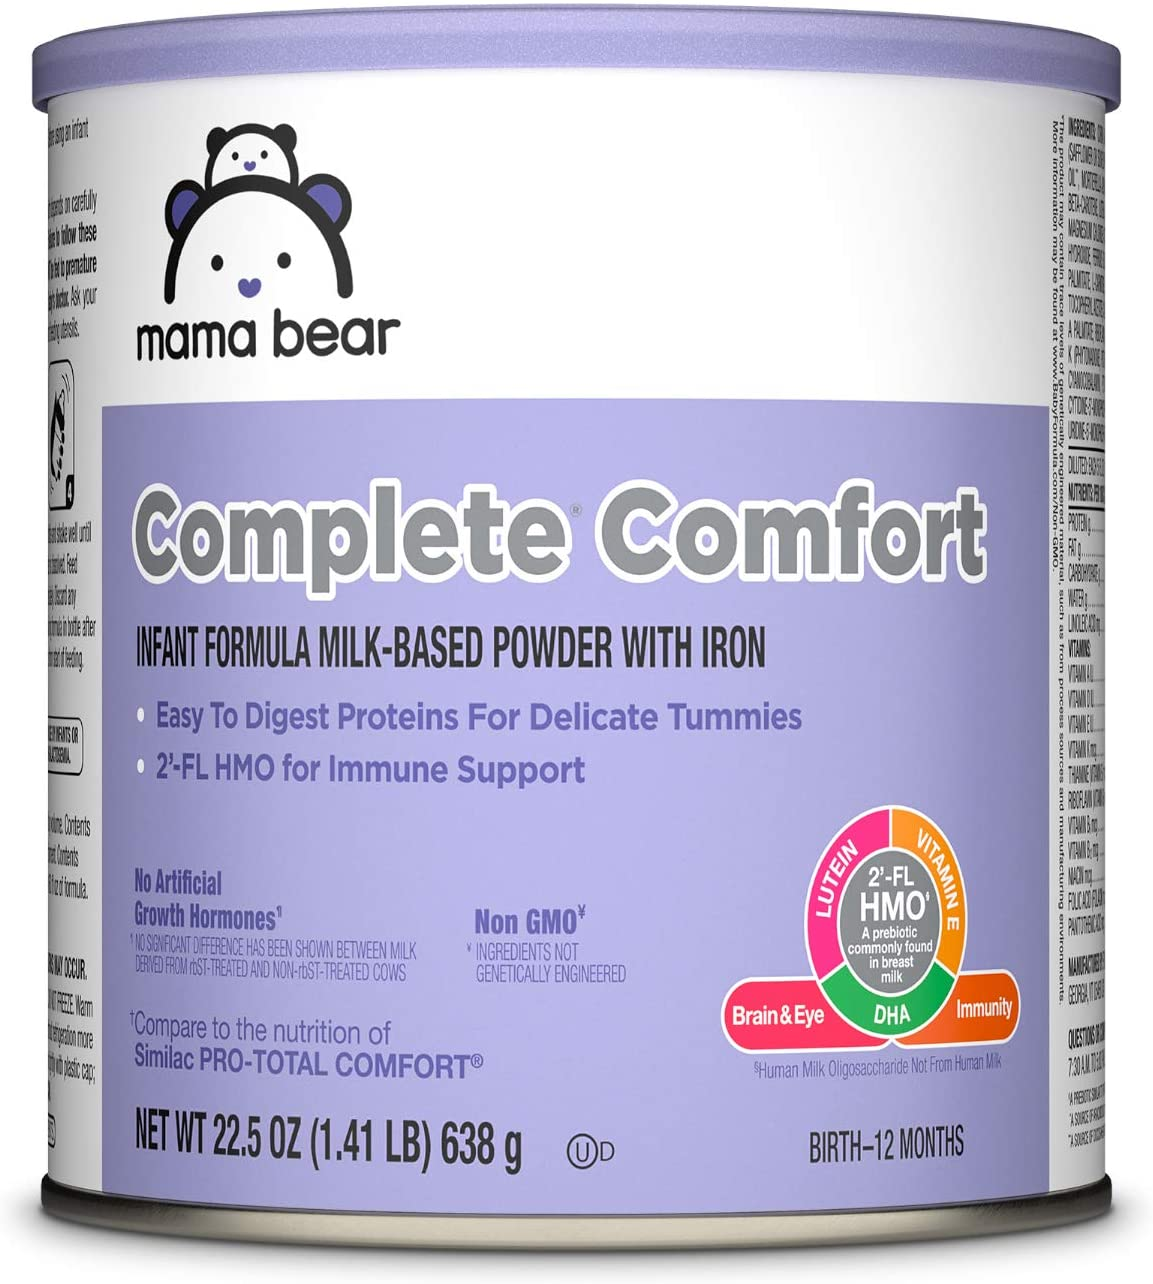 DHgate Brand - Mama Bear Complete Comfort Infant Formula Milk-Based Powder with Iron, 22.5 Ounce